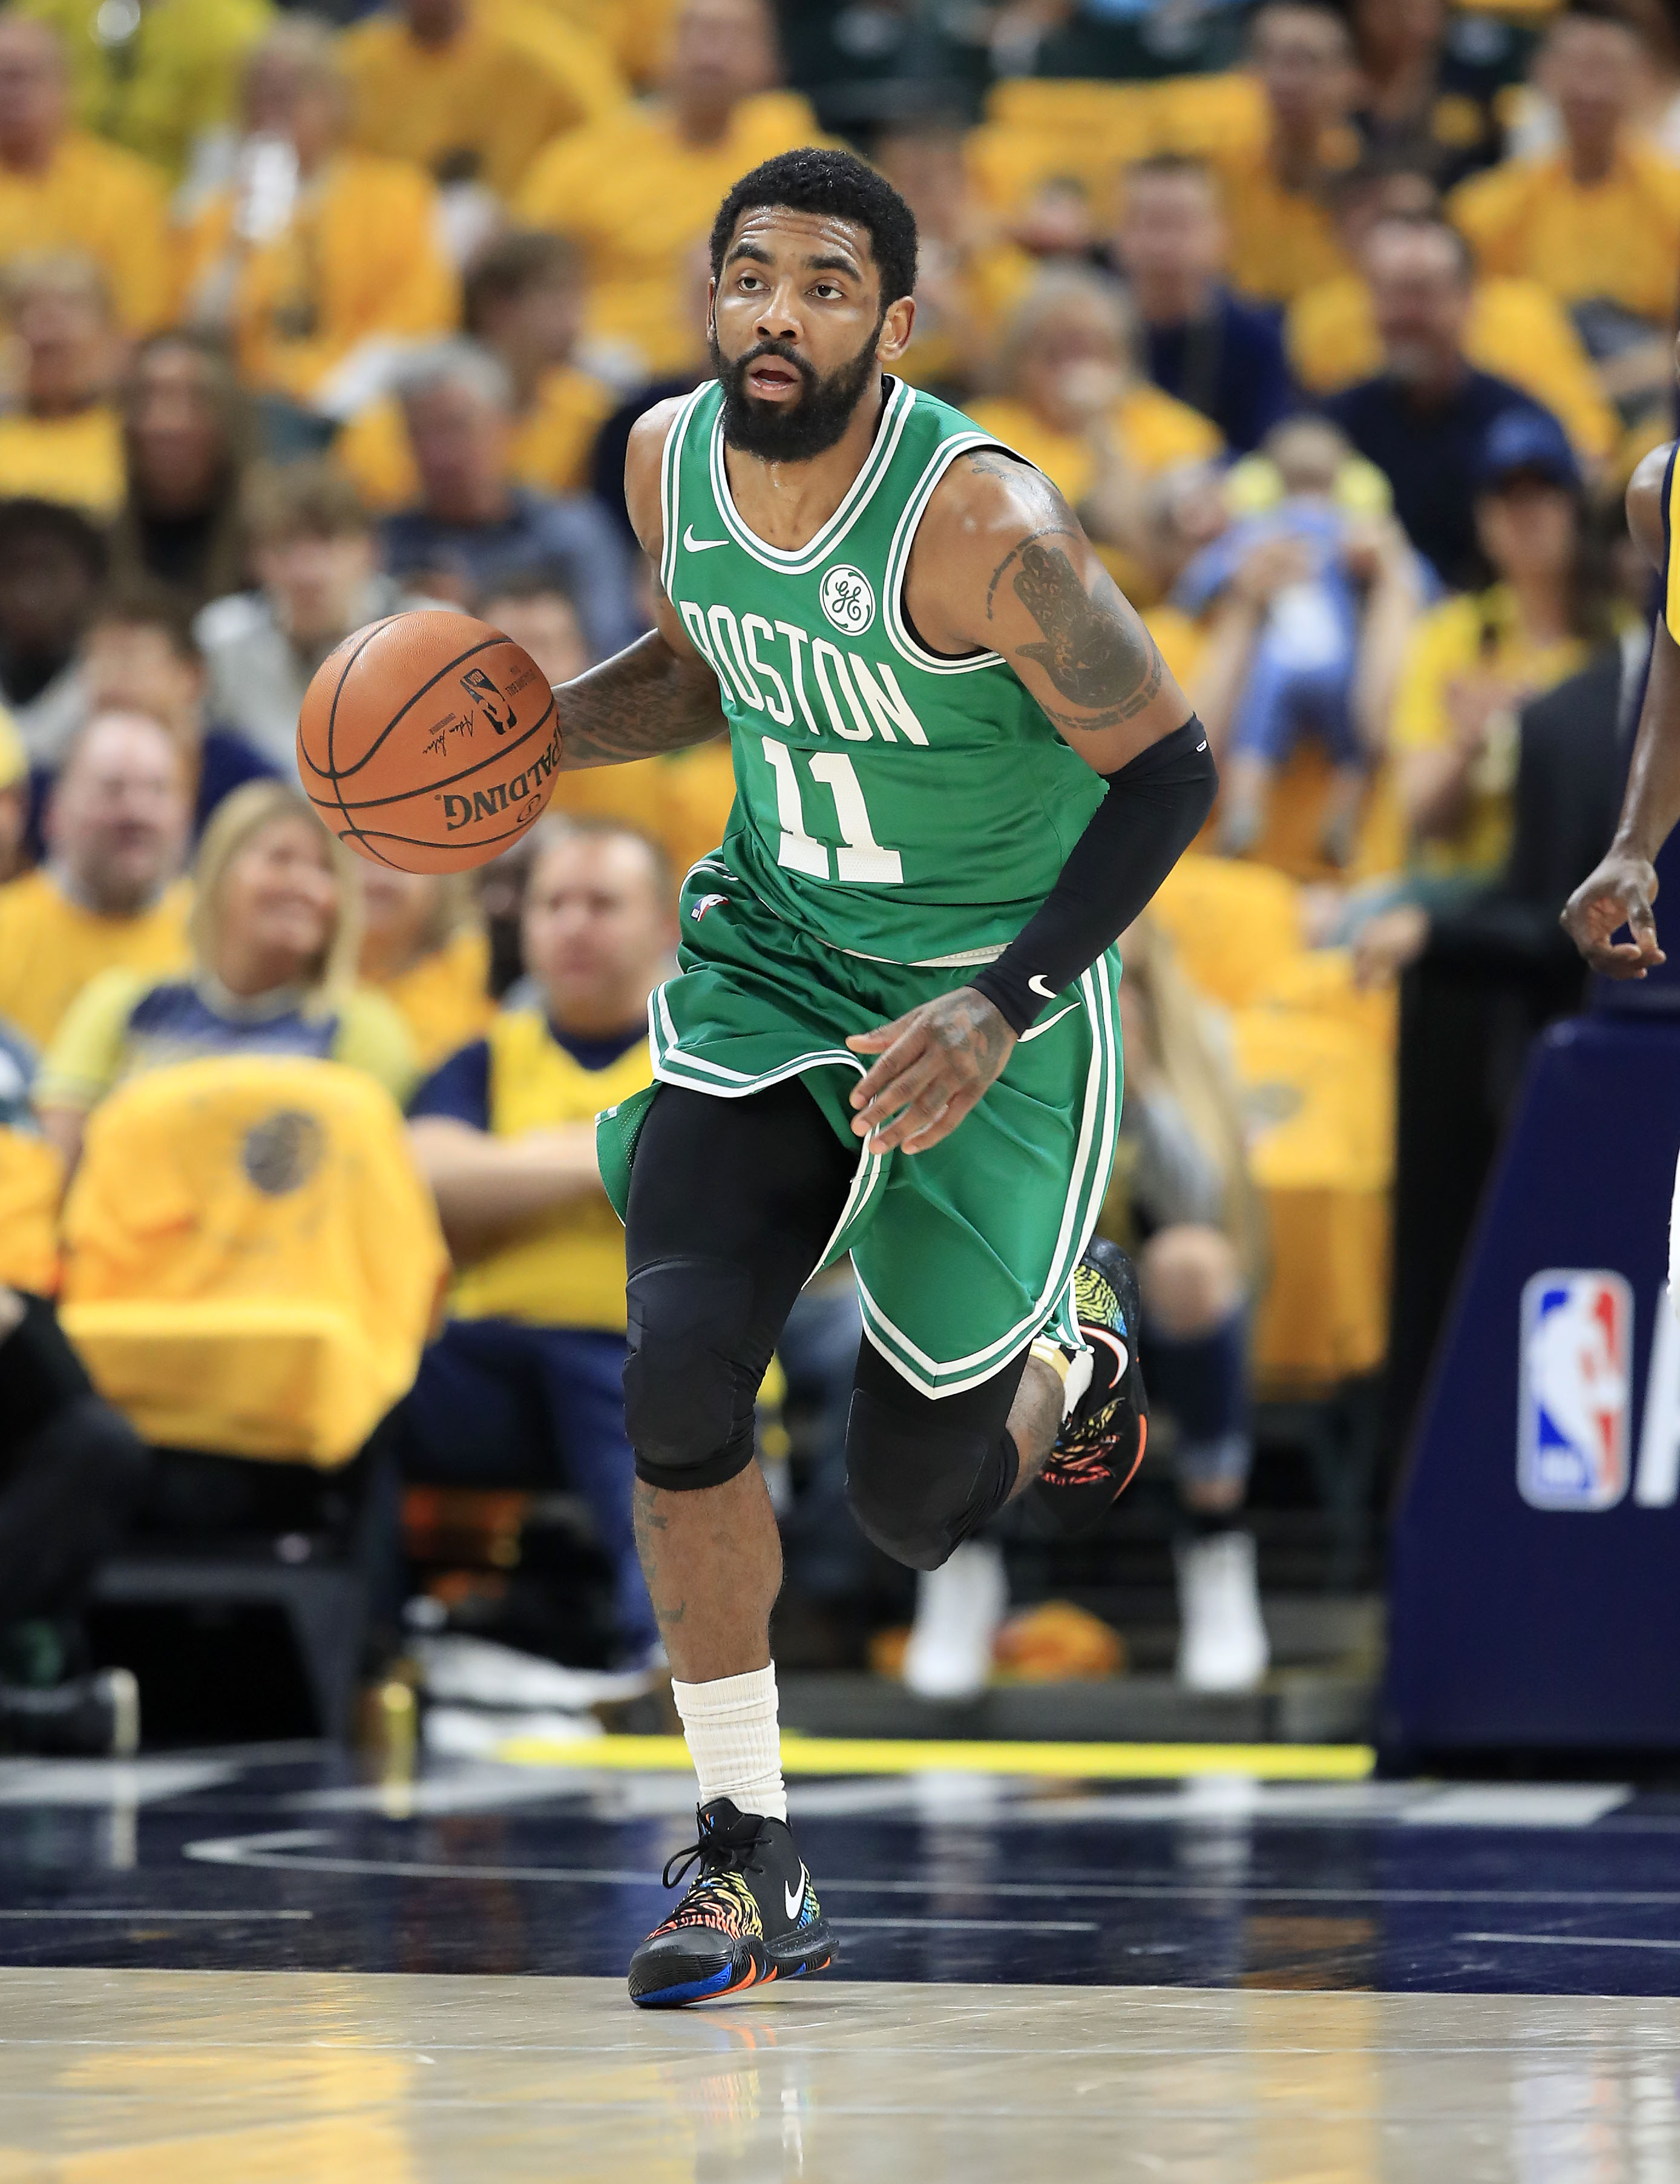 Boston Celtics guard Kyrie Irving missed last year's first-round series against the Milwaukee Bucks due to injury.